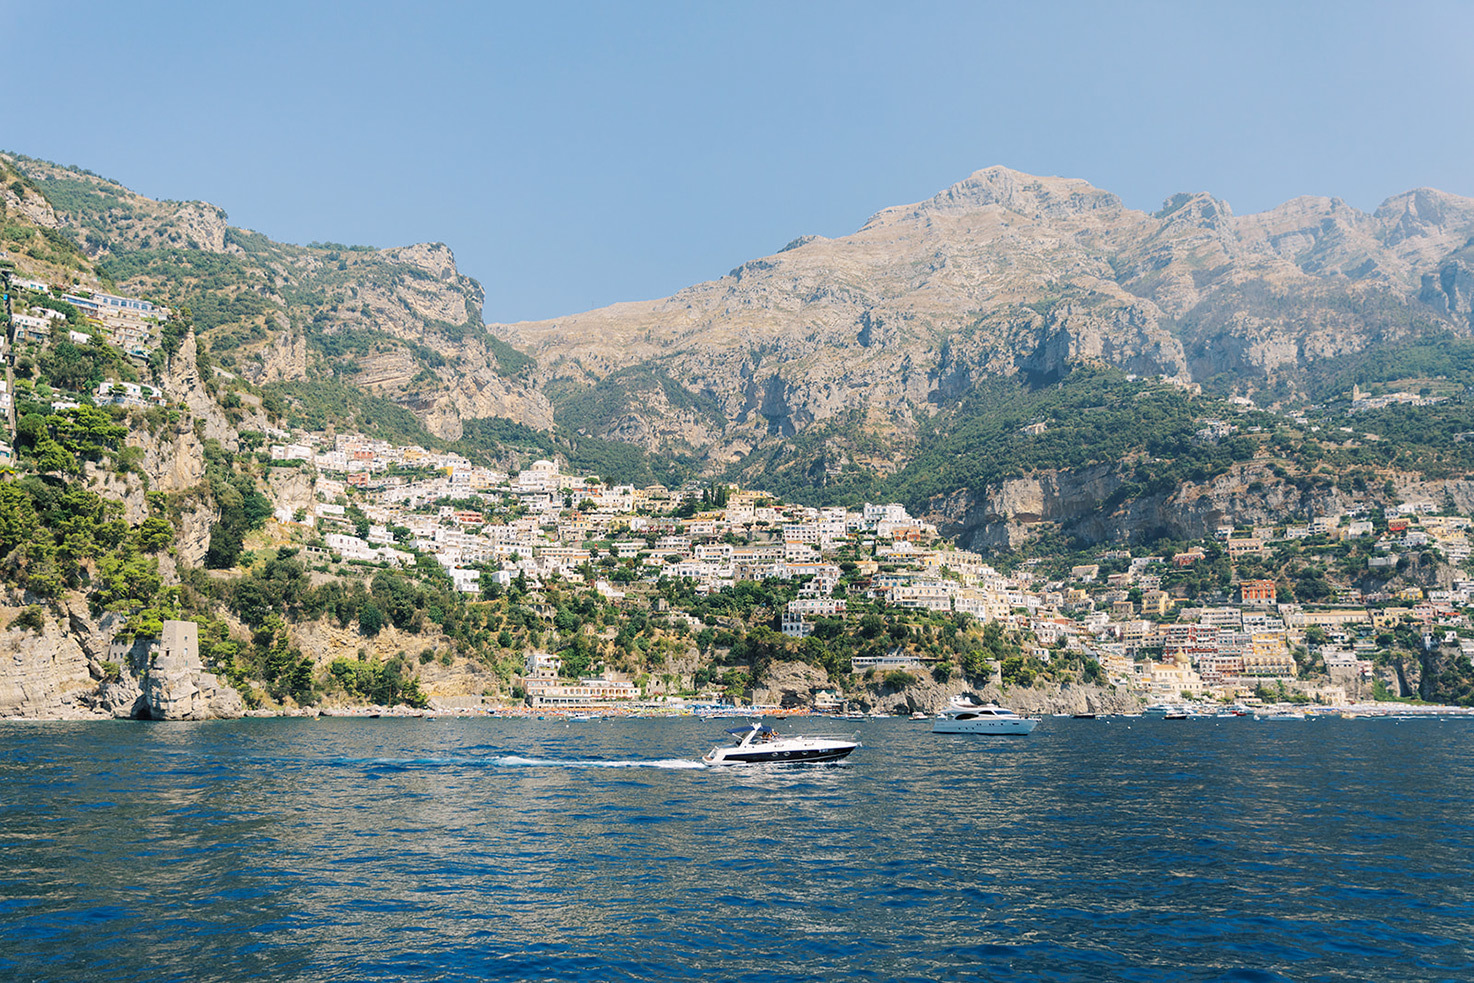 Panorama of Positano from the sea